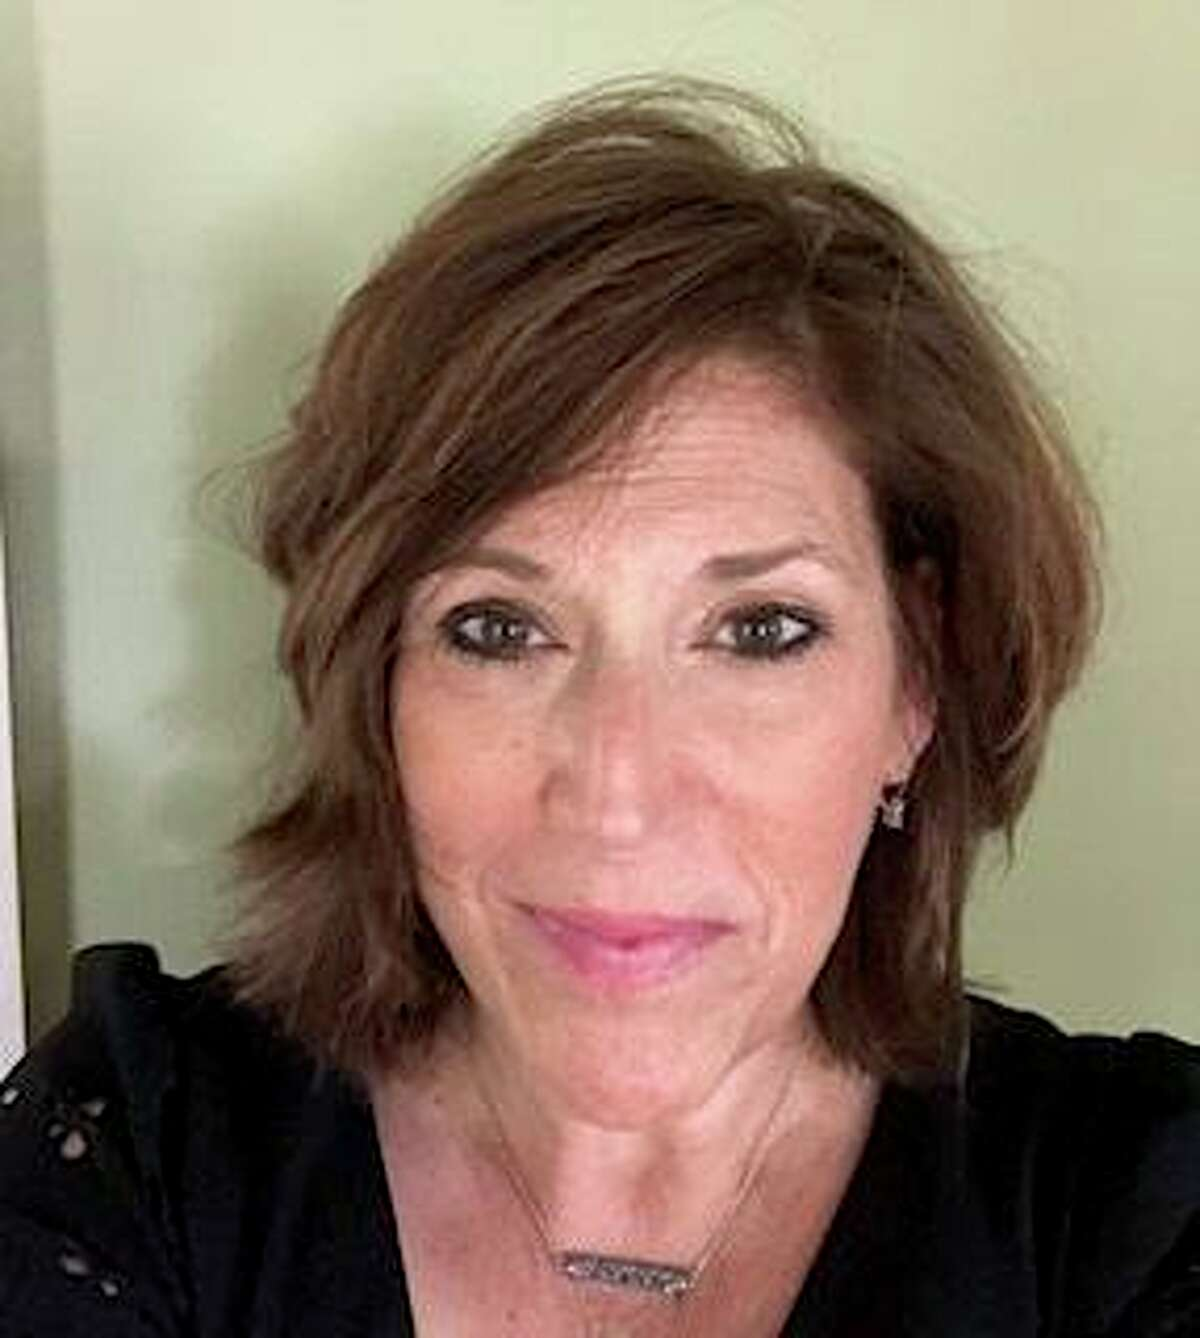 The new assistant superintendent, Holly Hollander, comes to New Milford Public Schools from Lebanon Public Schools where she was the former director of curriculum and instruction.